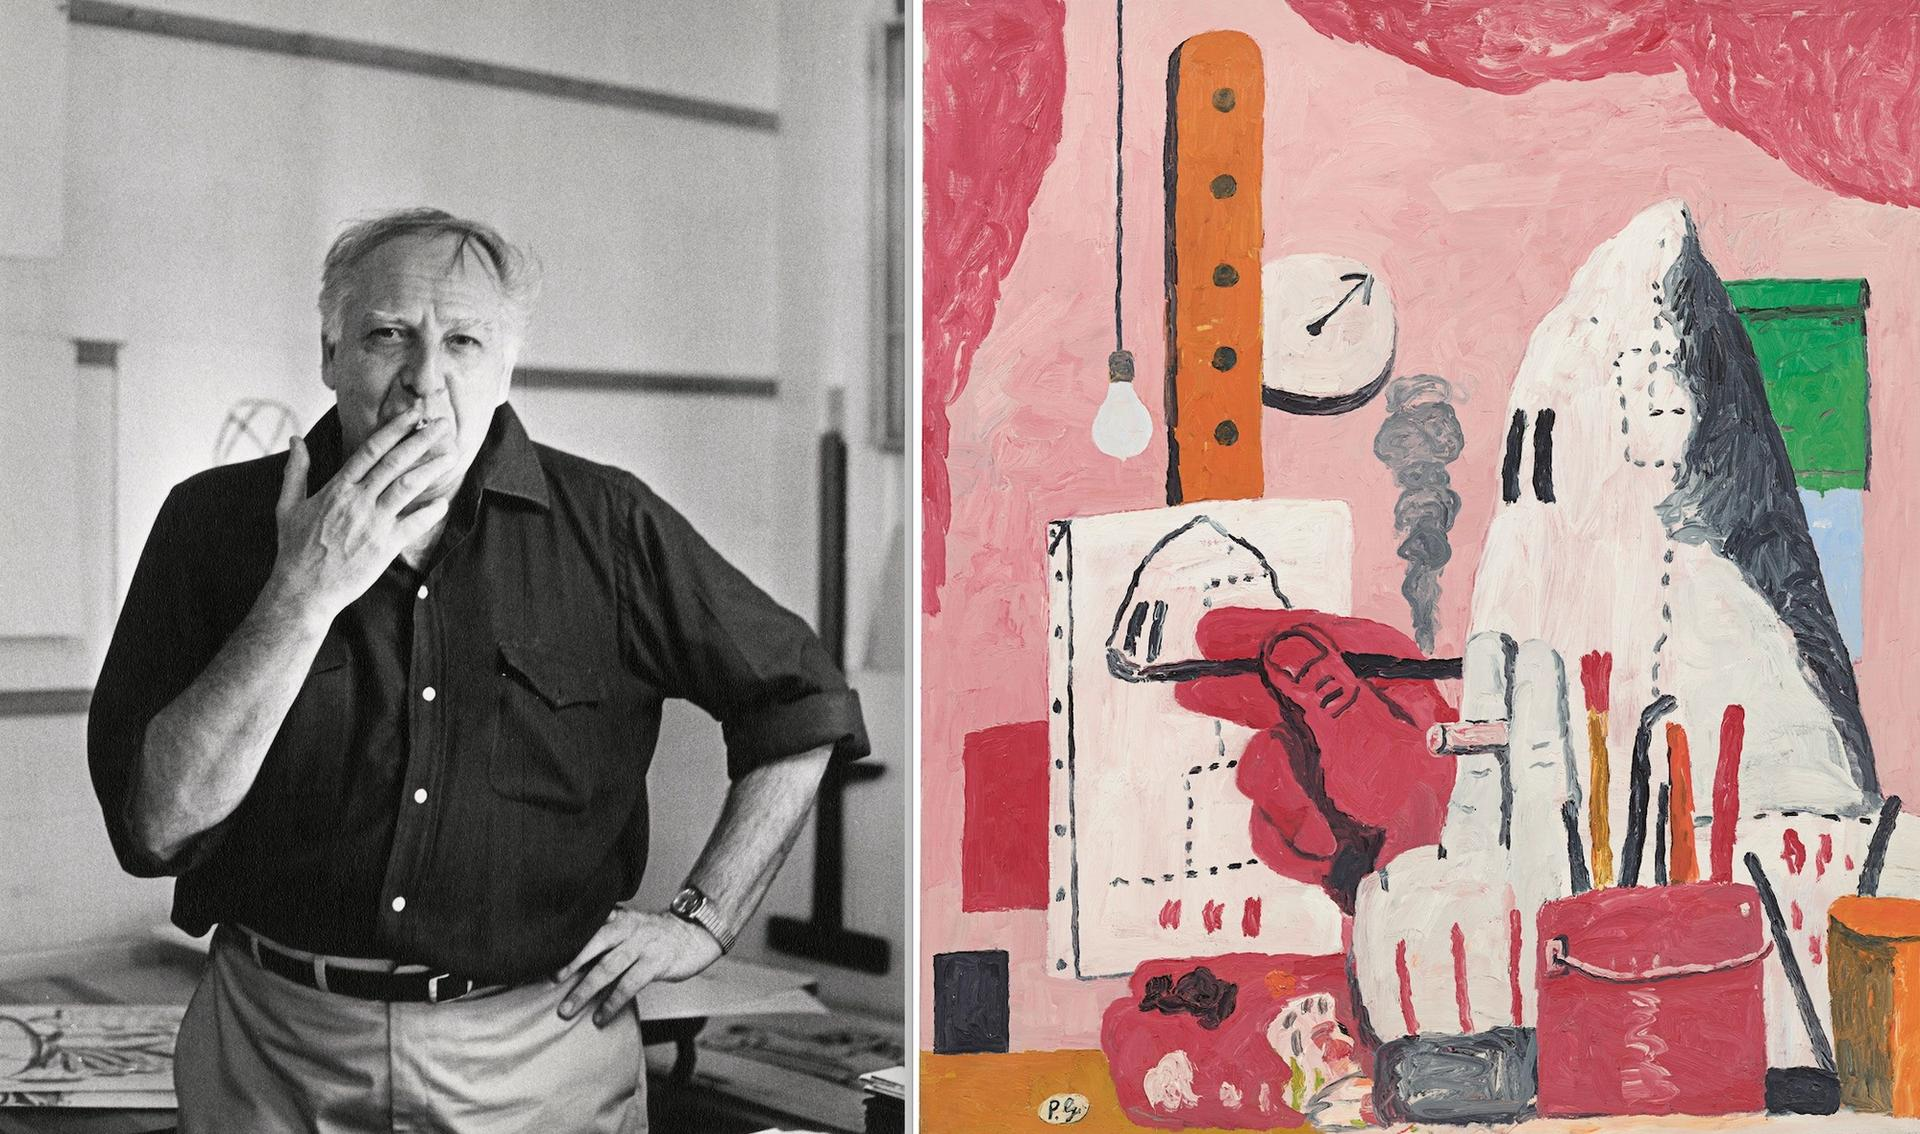 A major show on the late artist Philip Guston (left) has been delayed because of sensitivities around his KKK imagery (right, The Studio, 1969) Guston portrait: Photo: Frank R. Lloyd. The Studio: © The Estate of Philip Guston